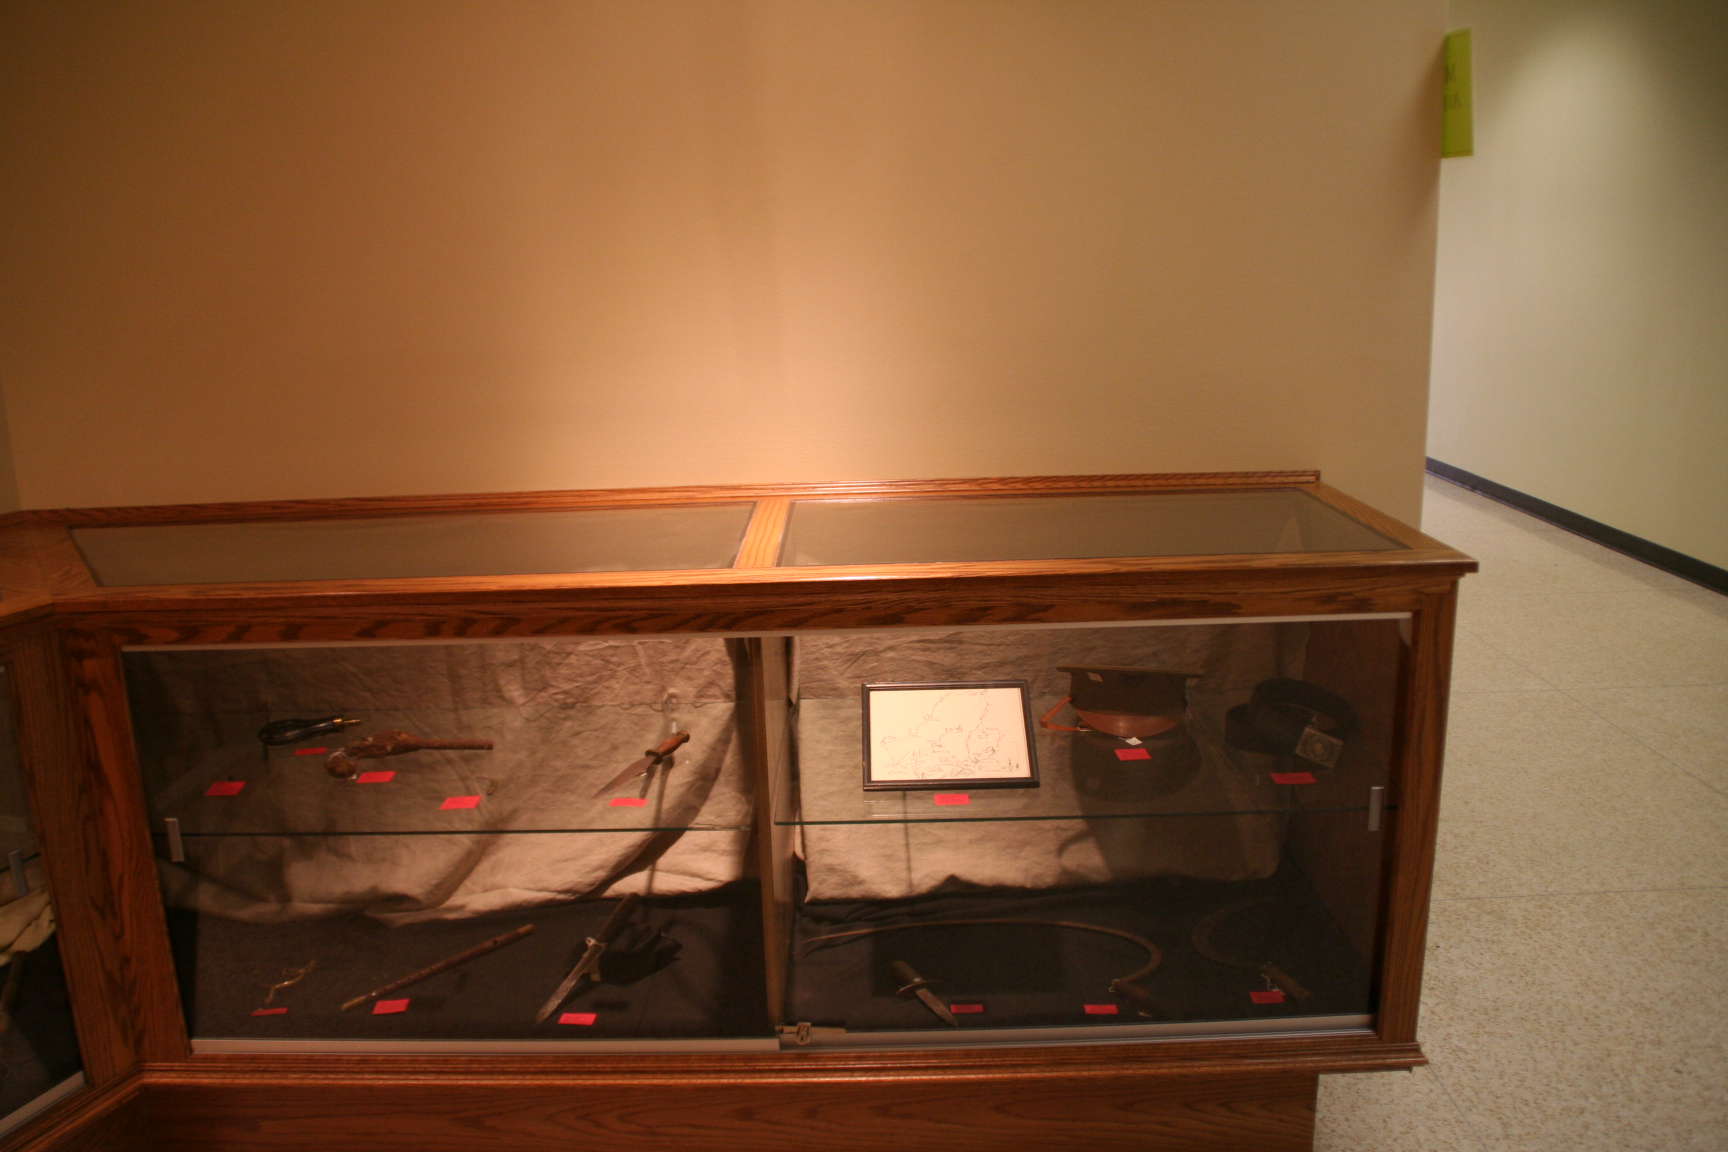 A glass case lined with red velvet, filled with guns and knives of various sorts.